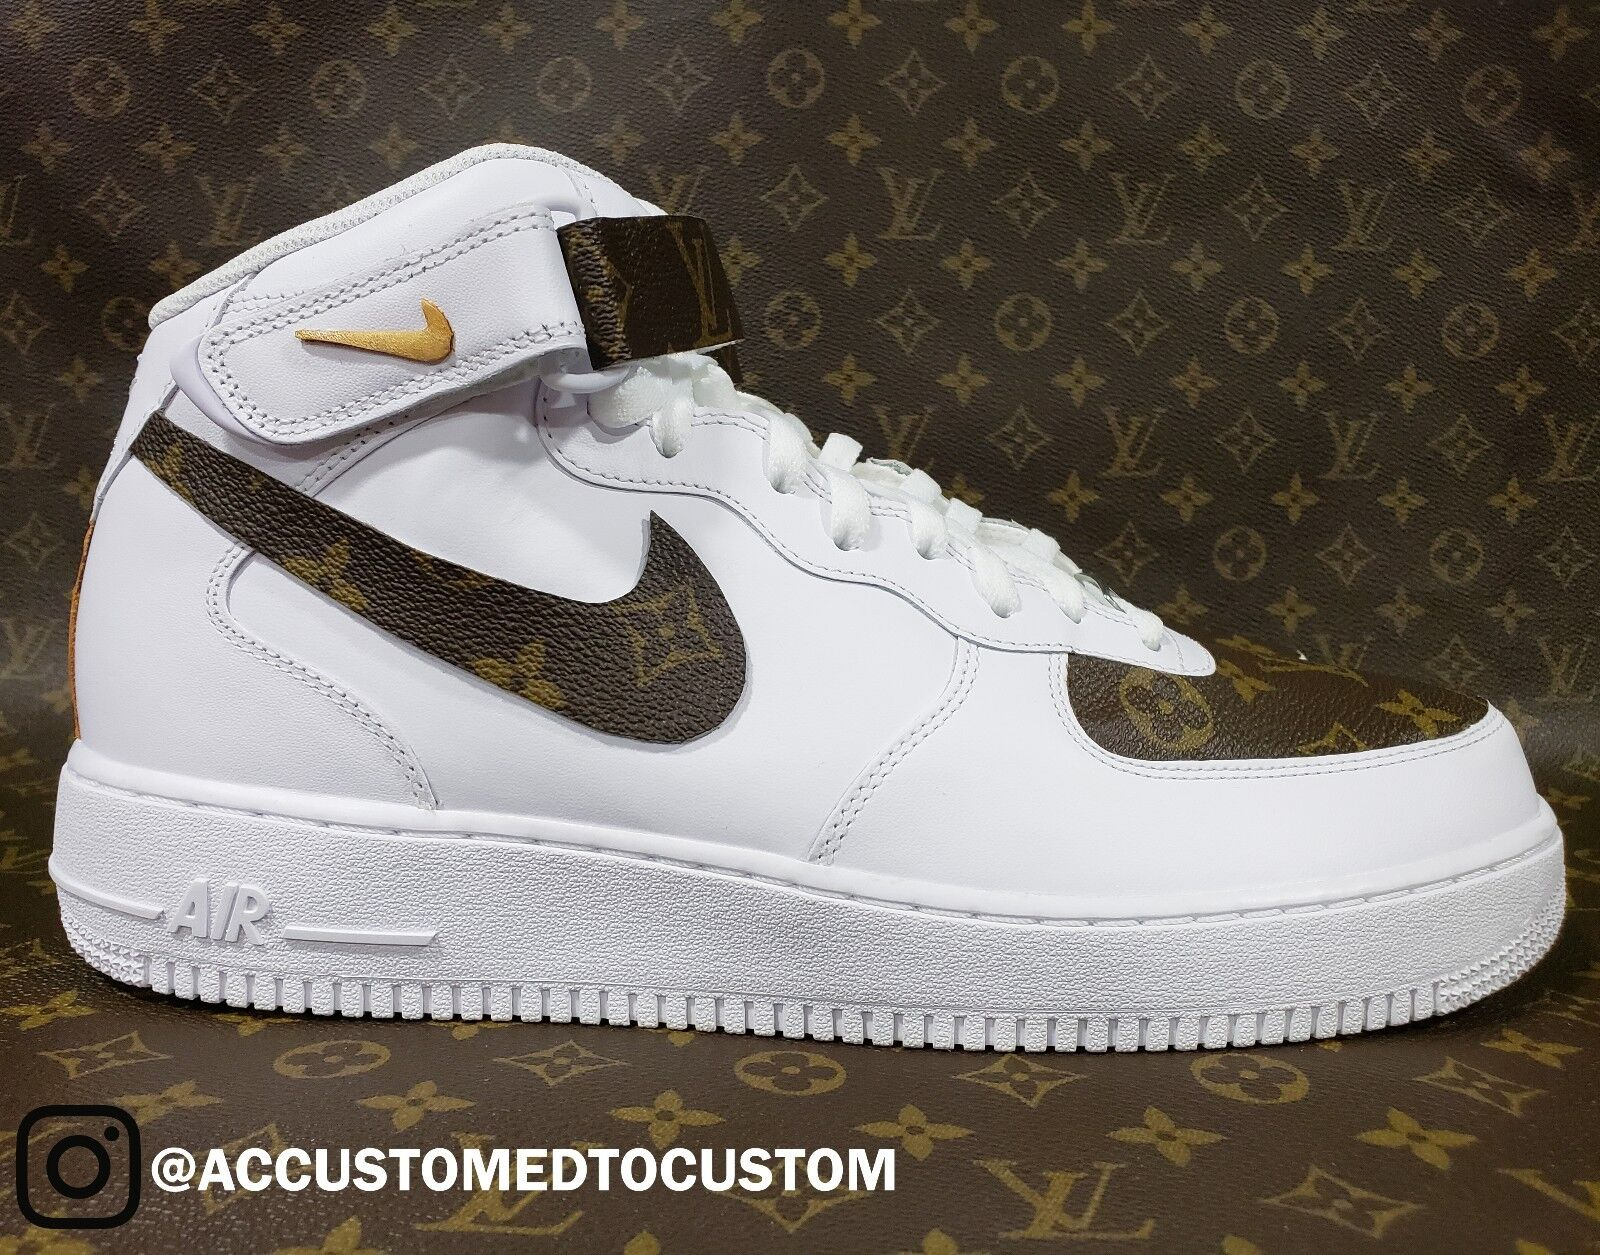 NIKE AIR FORCE 1 MID | MADE W/ GENUINE LOU!S VU!TTON MONOGRAM CUSTOM Not Jordan